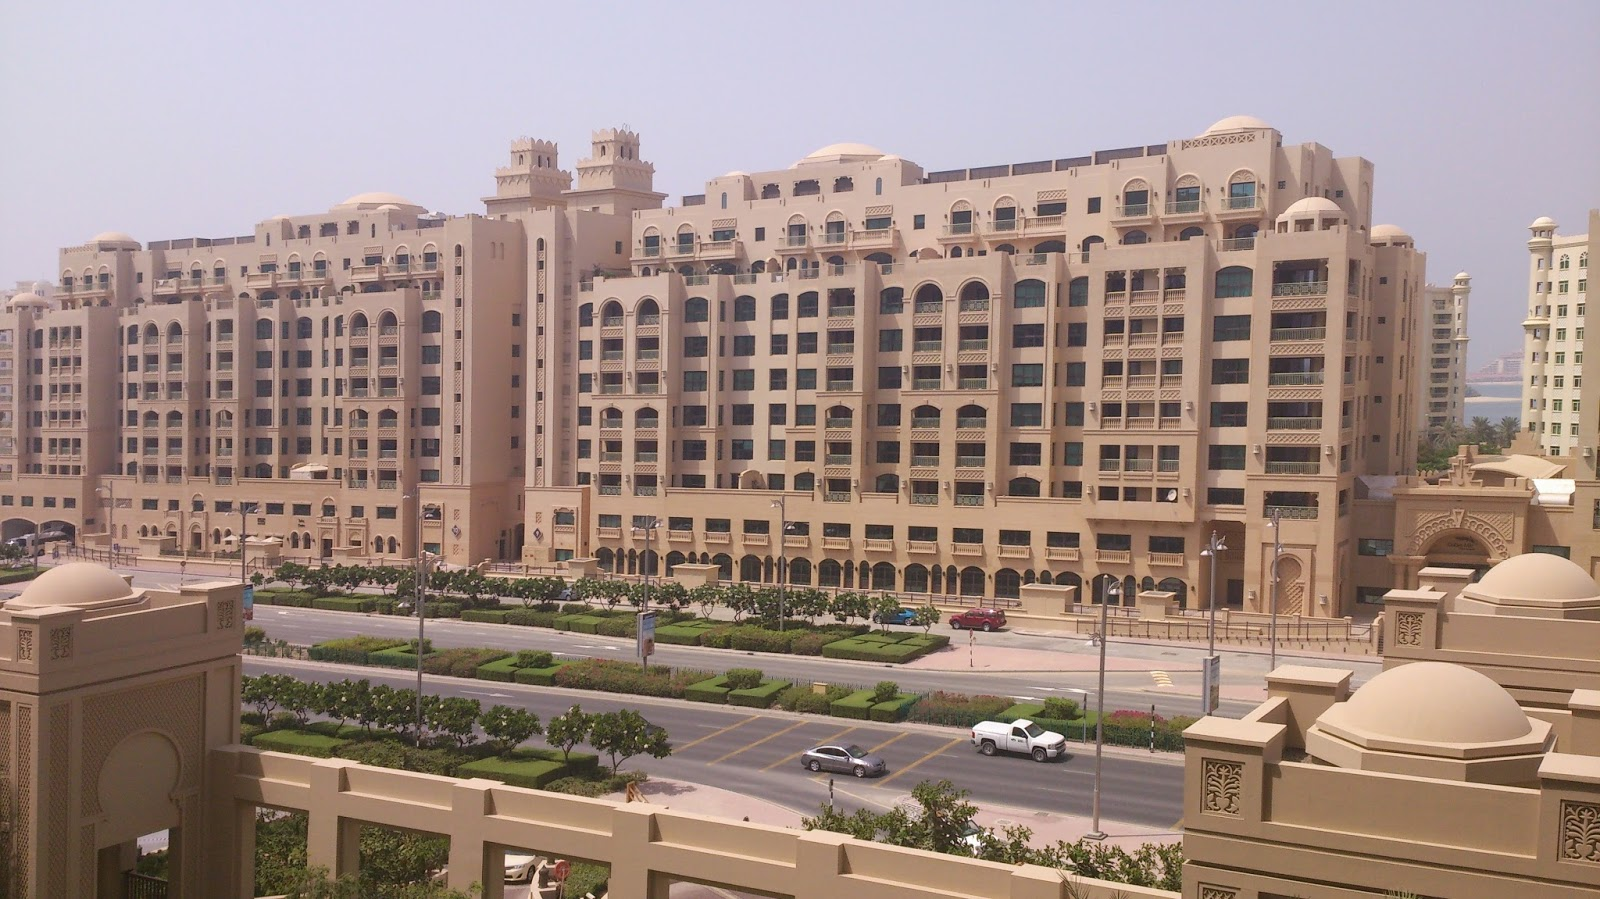 Tolu in wonderland fairmont the palm dubai palm jumeirah for Hotel dubai palm